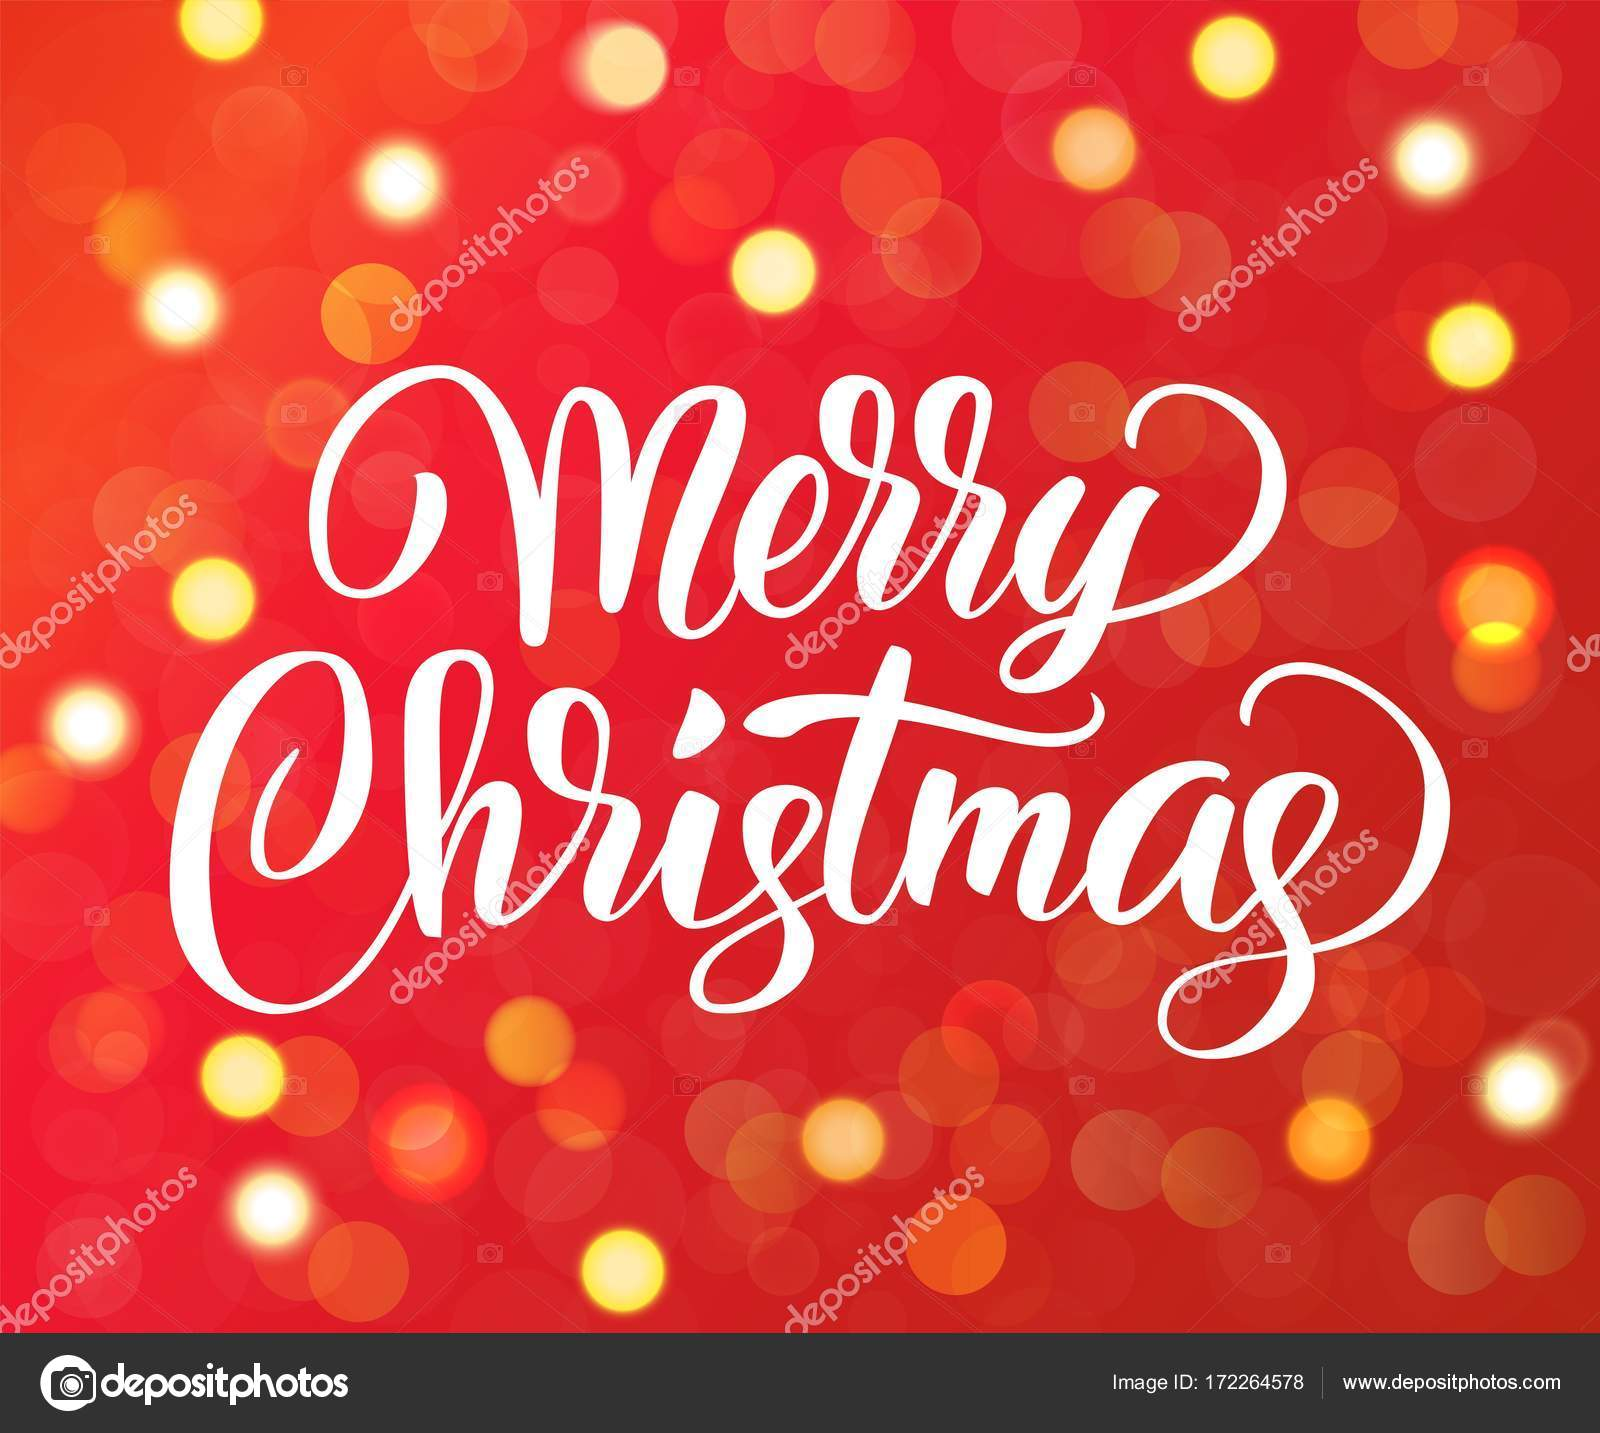 Merry christmas text holiday greetings quote golden sparkling merry christmas text holiday greetings quote golden sparkling glowing lights red background with m4hsunfo